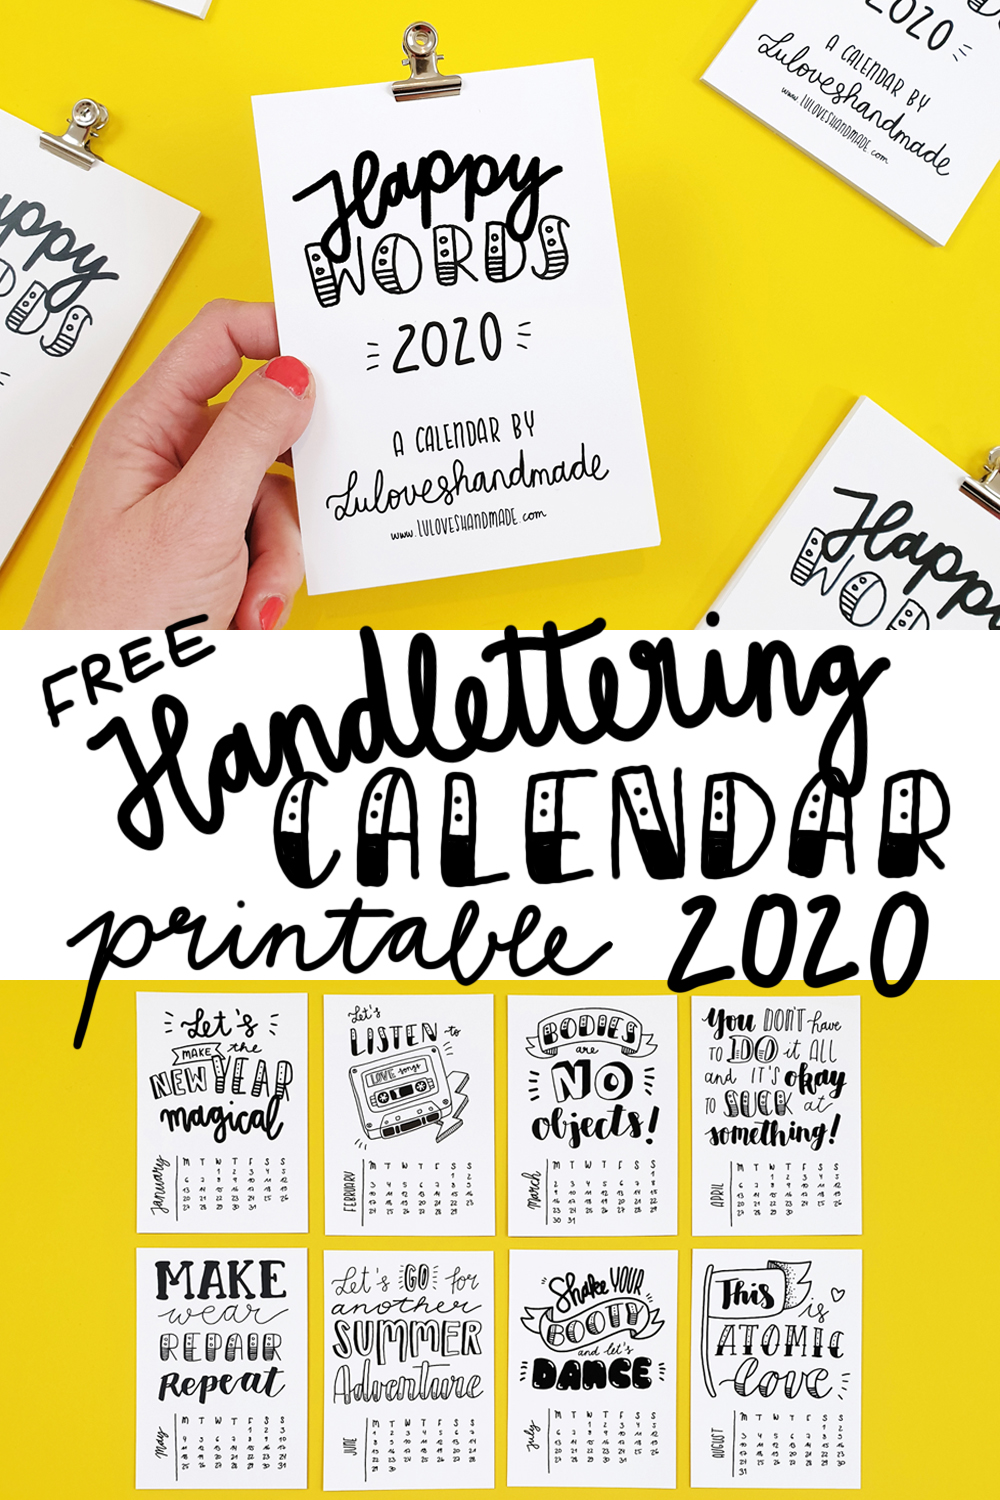 Luloveshandmade-Handlettering-Berlin-Free-Calendar-Printable-Happy-Words-Pin